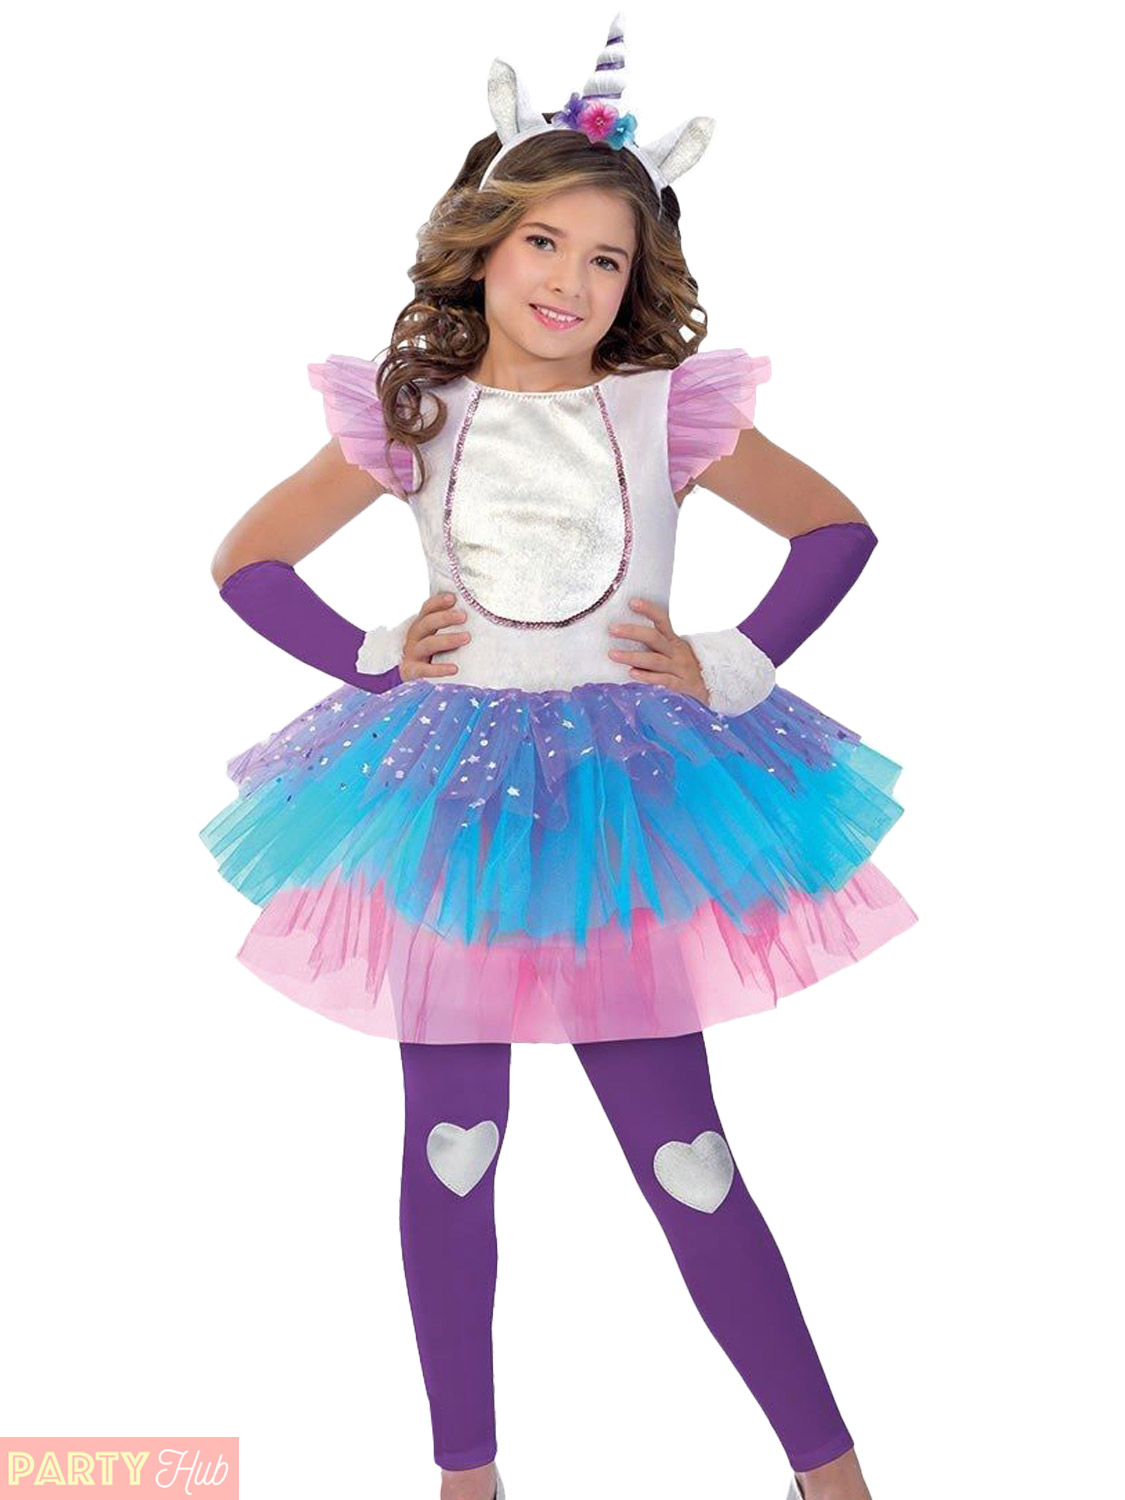 Child Girls Fantasy Pink Unicorn Costume with Accessories 5 Sizes Fancy Dress